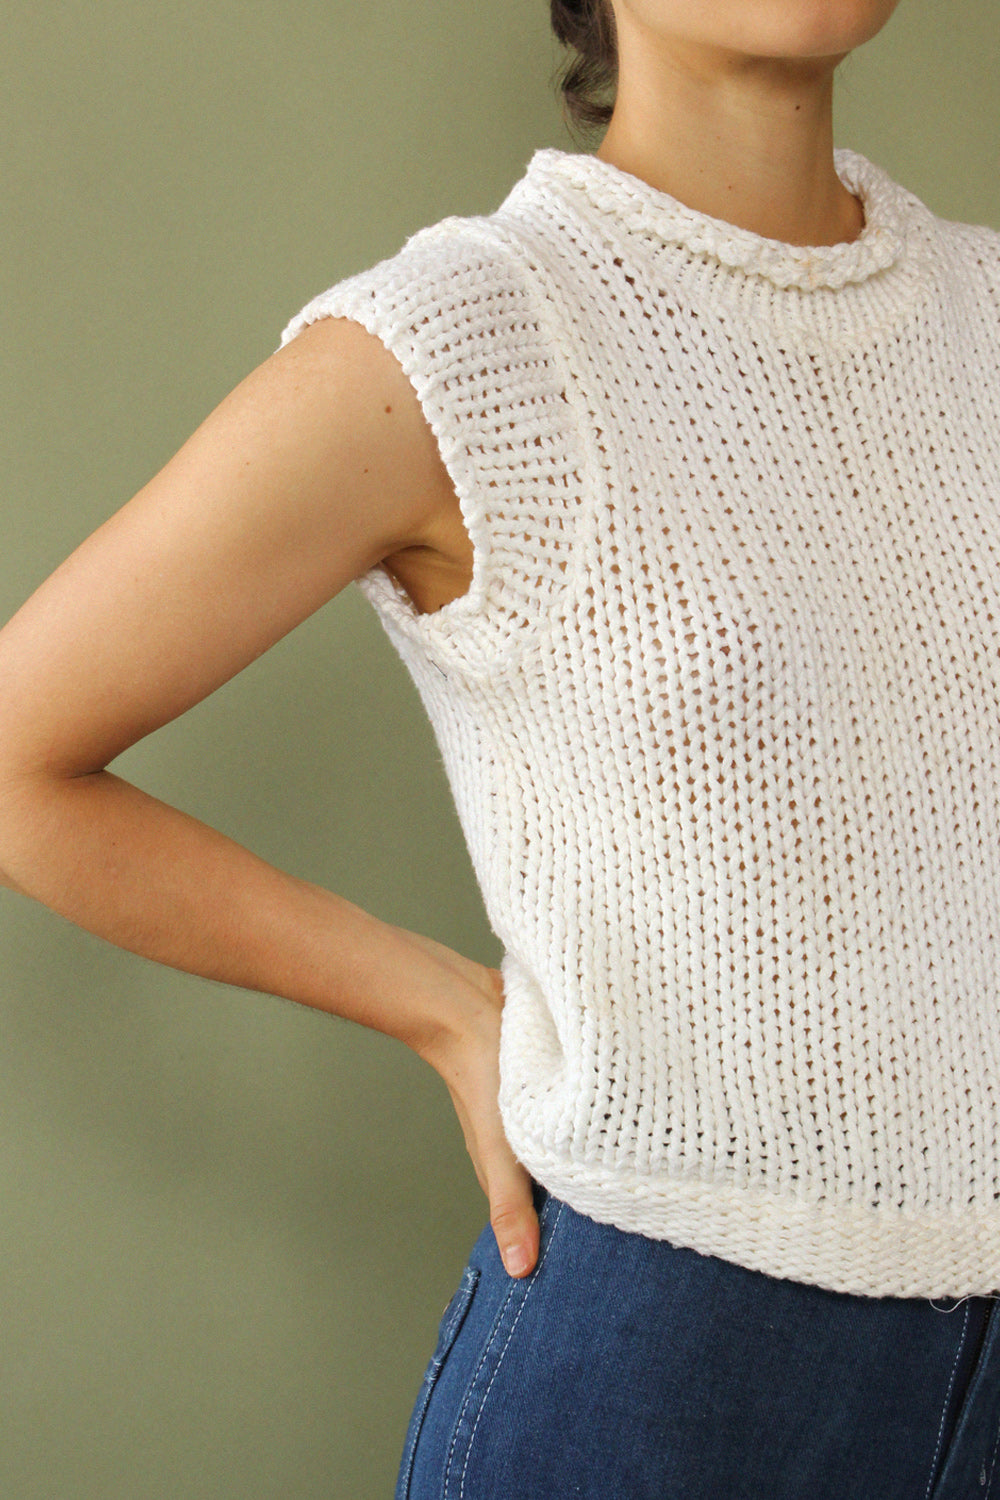 Sleeveless Cloud Sweater S-L